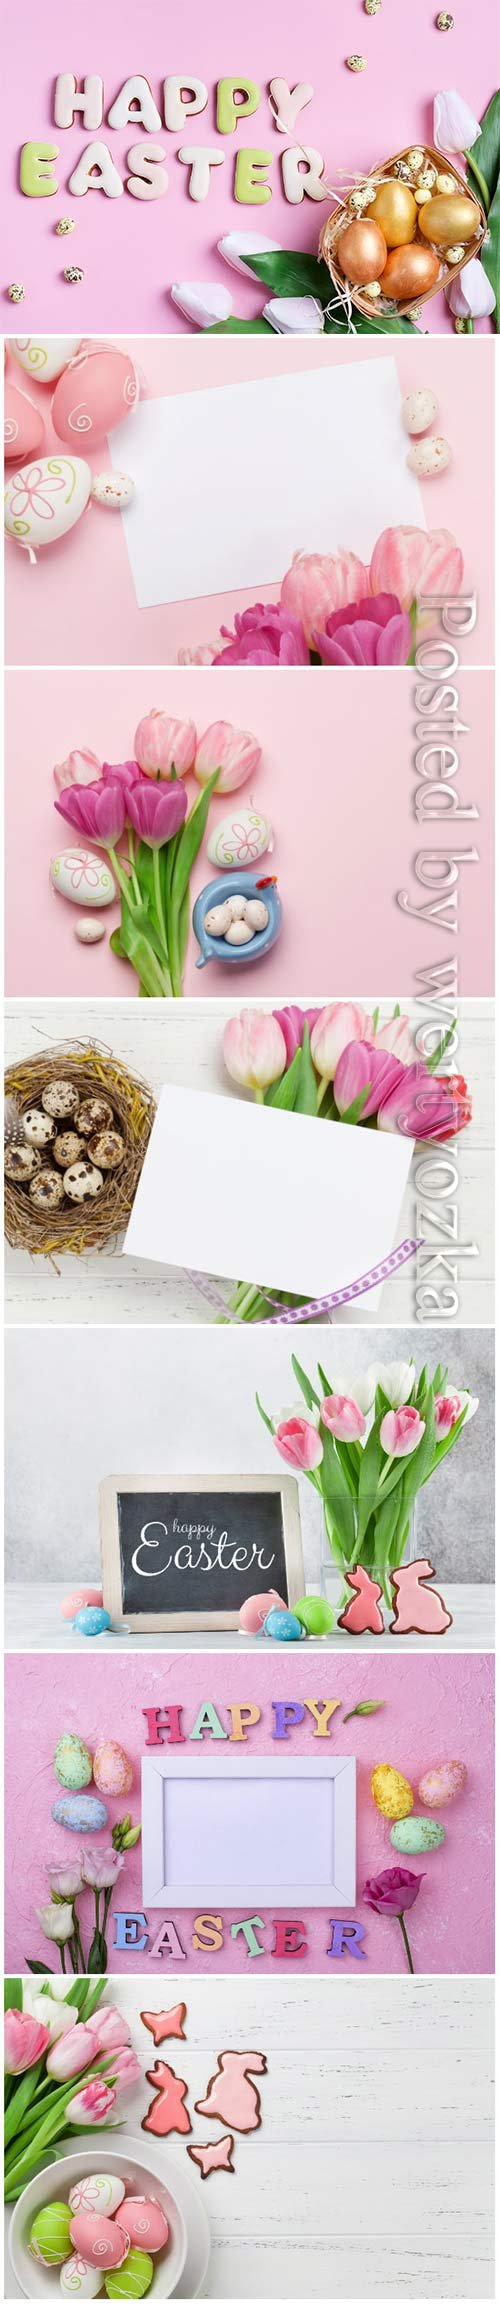 Happy Easter stock photo, Easter eggs, spring flowers # 10